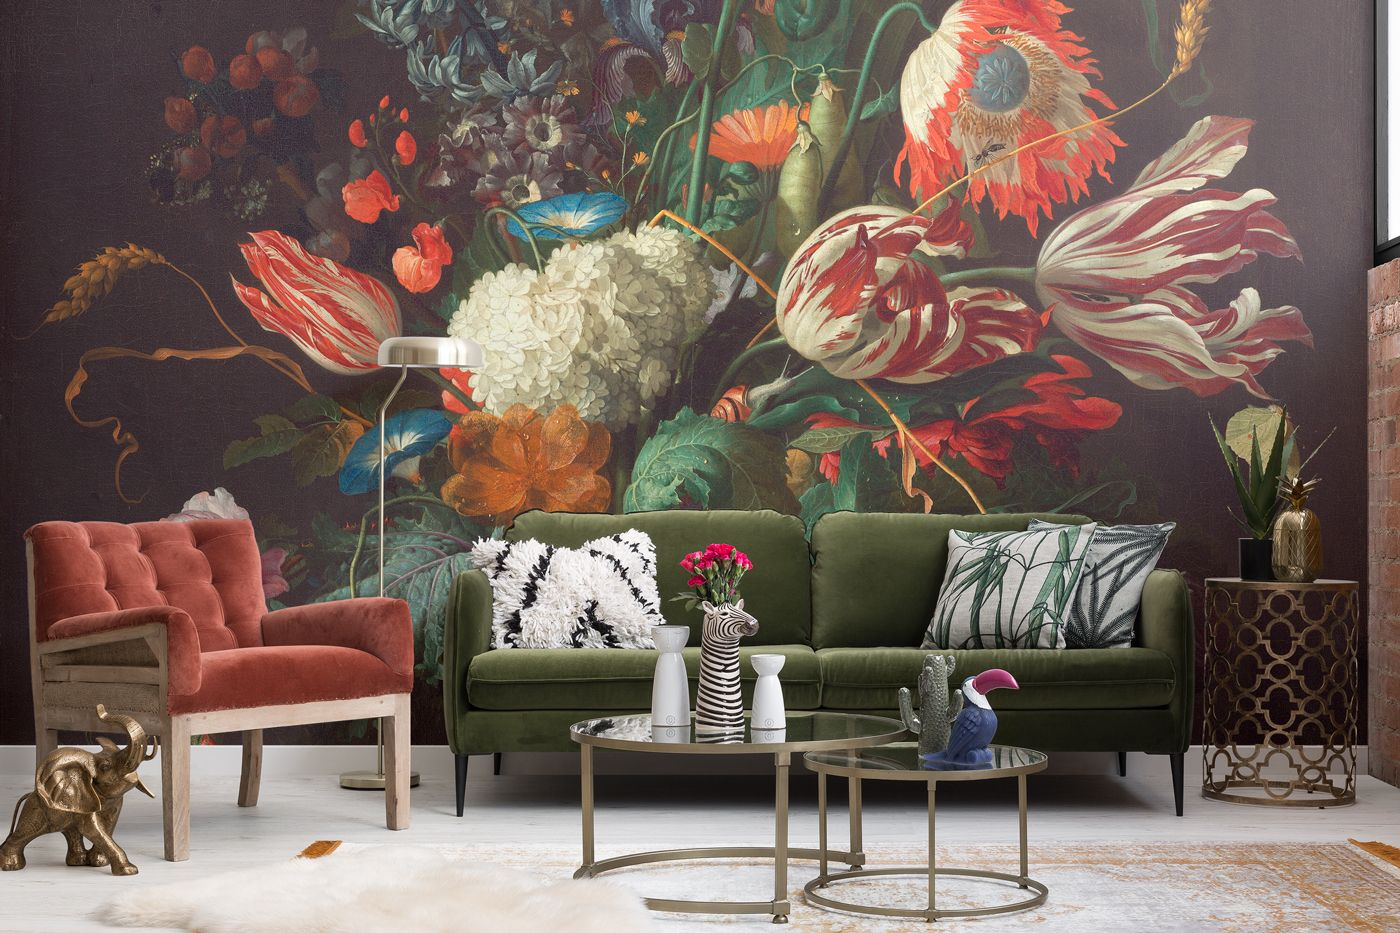 housebeautiful.com - Olivia Heath - Maximalism is 2018's Top Interior Design Trend - Maximalist Design Ideas